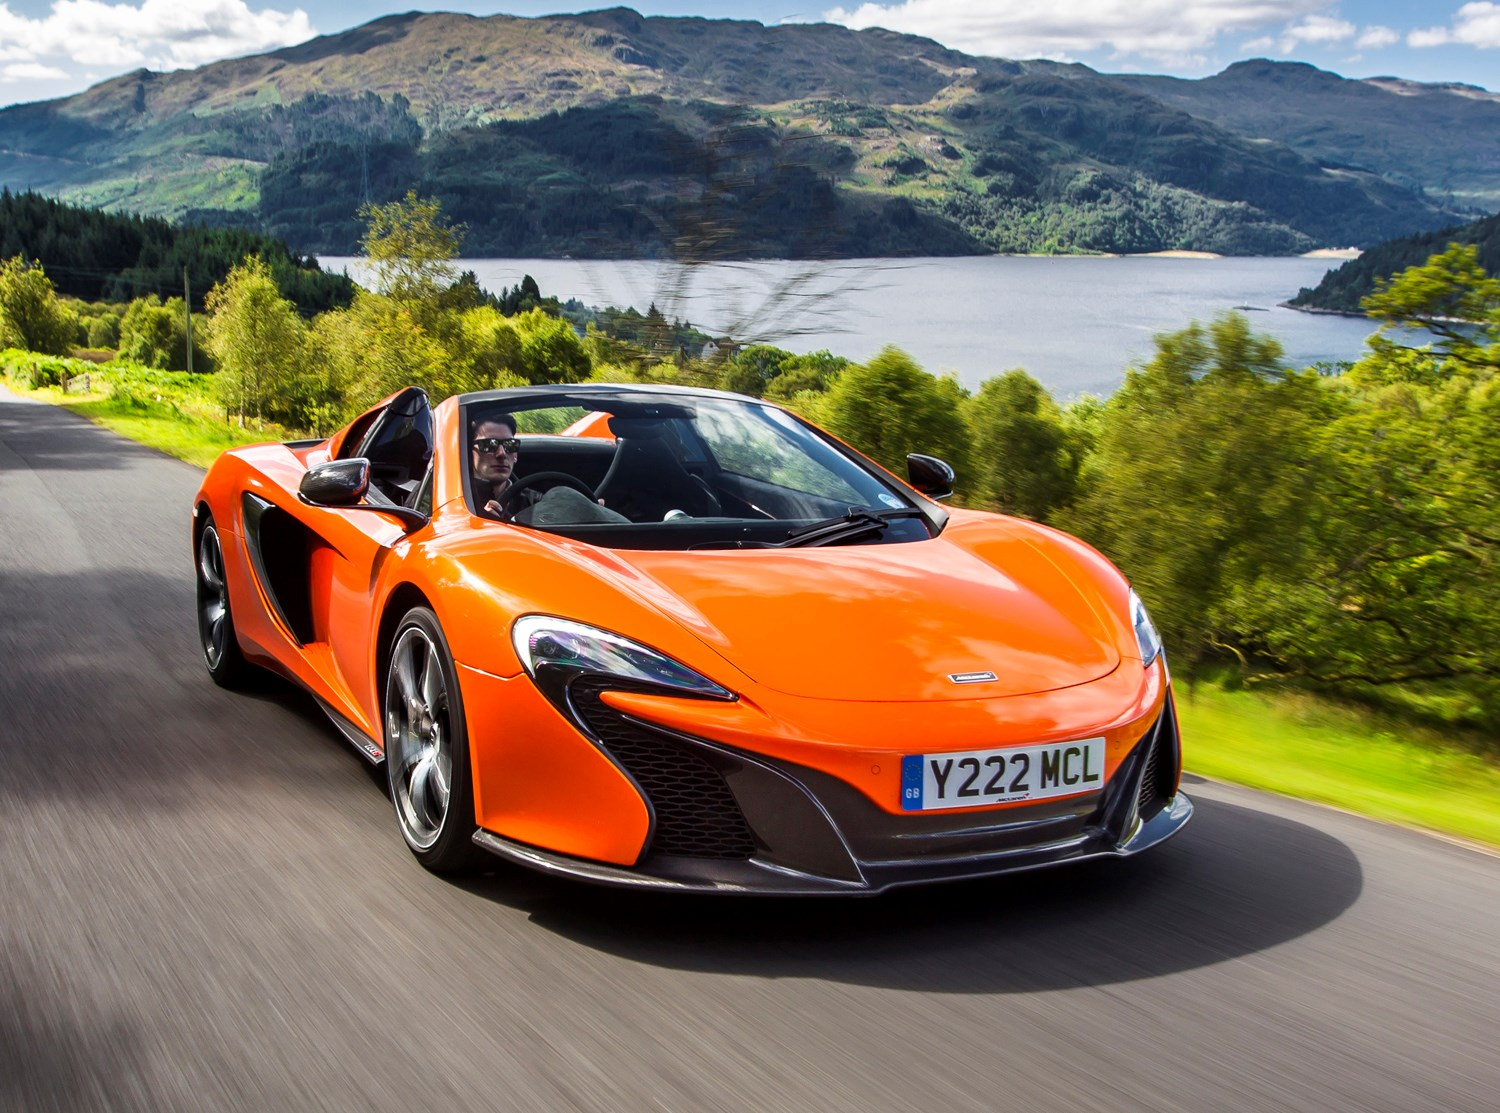 mclaren 650s spider convertible review 2014 parkers. Black Bedroom Furniture Sets. Home Design Ideas